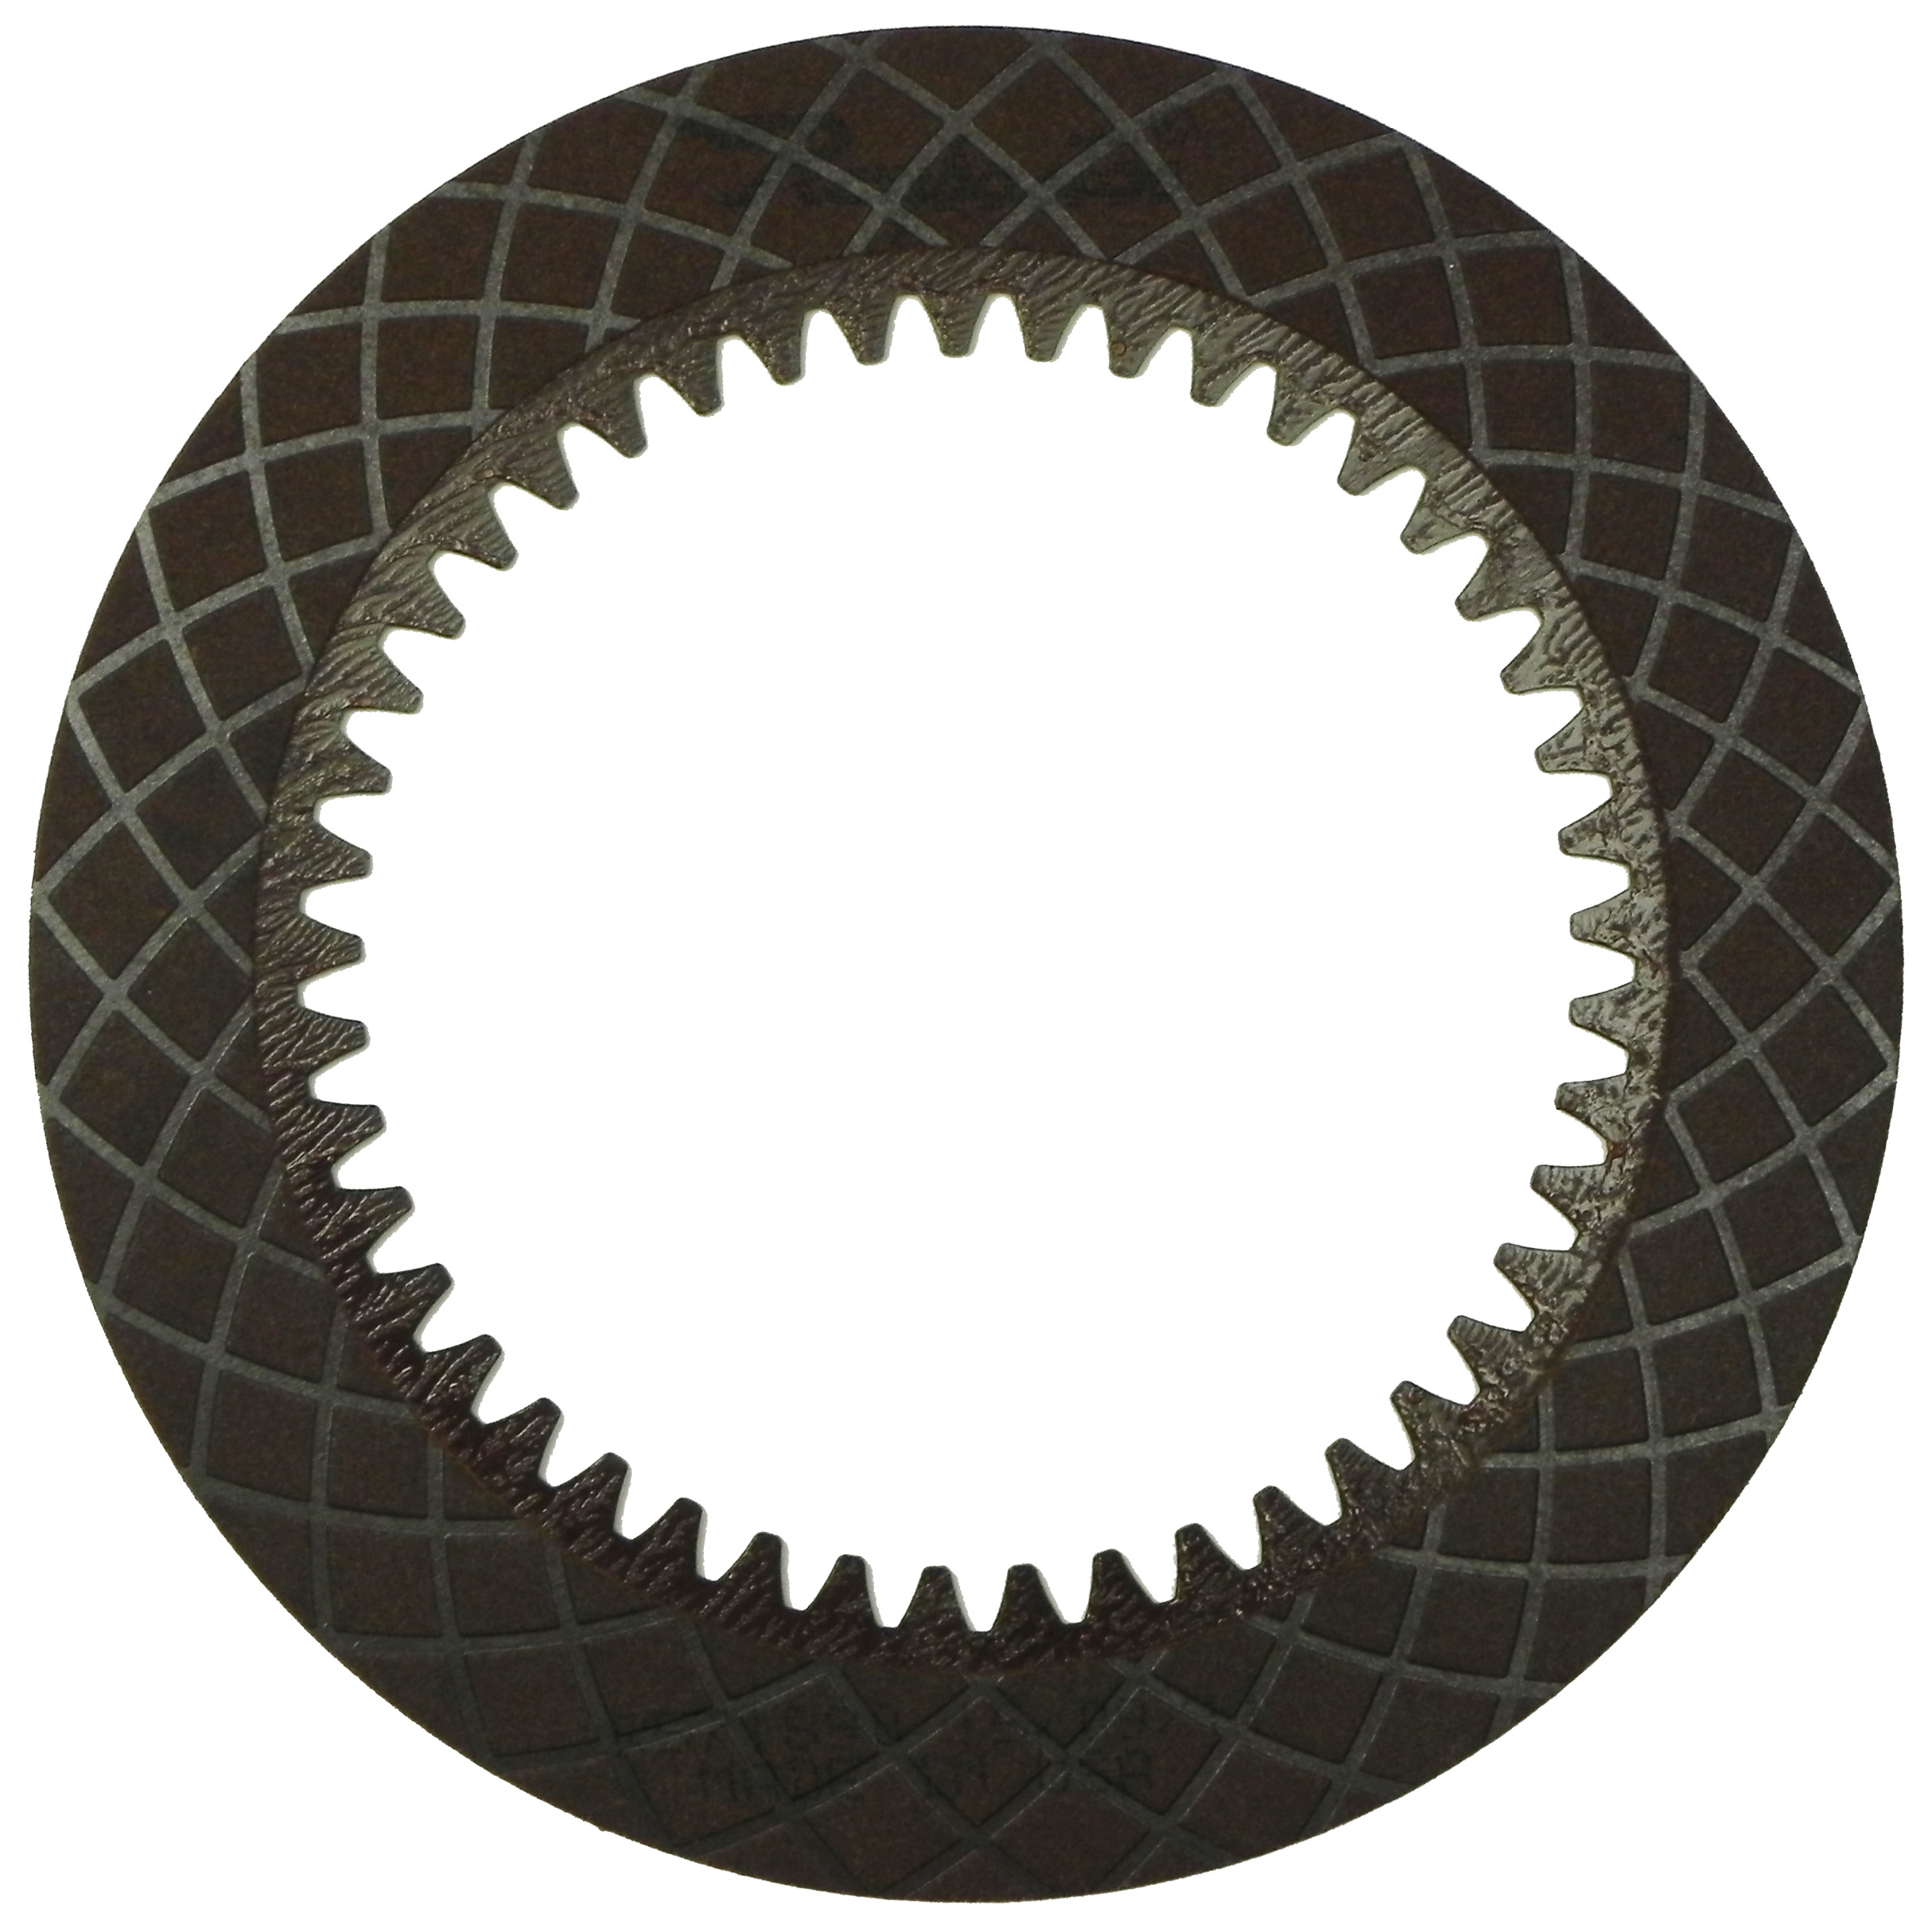 5 SPEED  BWEA (AWD) (07-09), BWEA (AWD), BT3A (FWD) (10-12), PN3A (4WD), PN4A (2WD) GPX Friction Clutch Plate